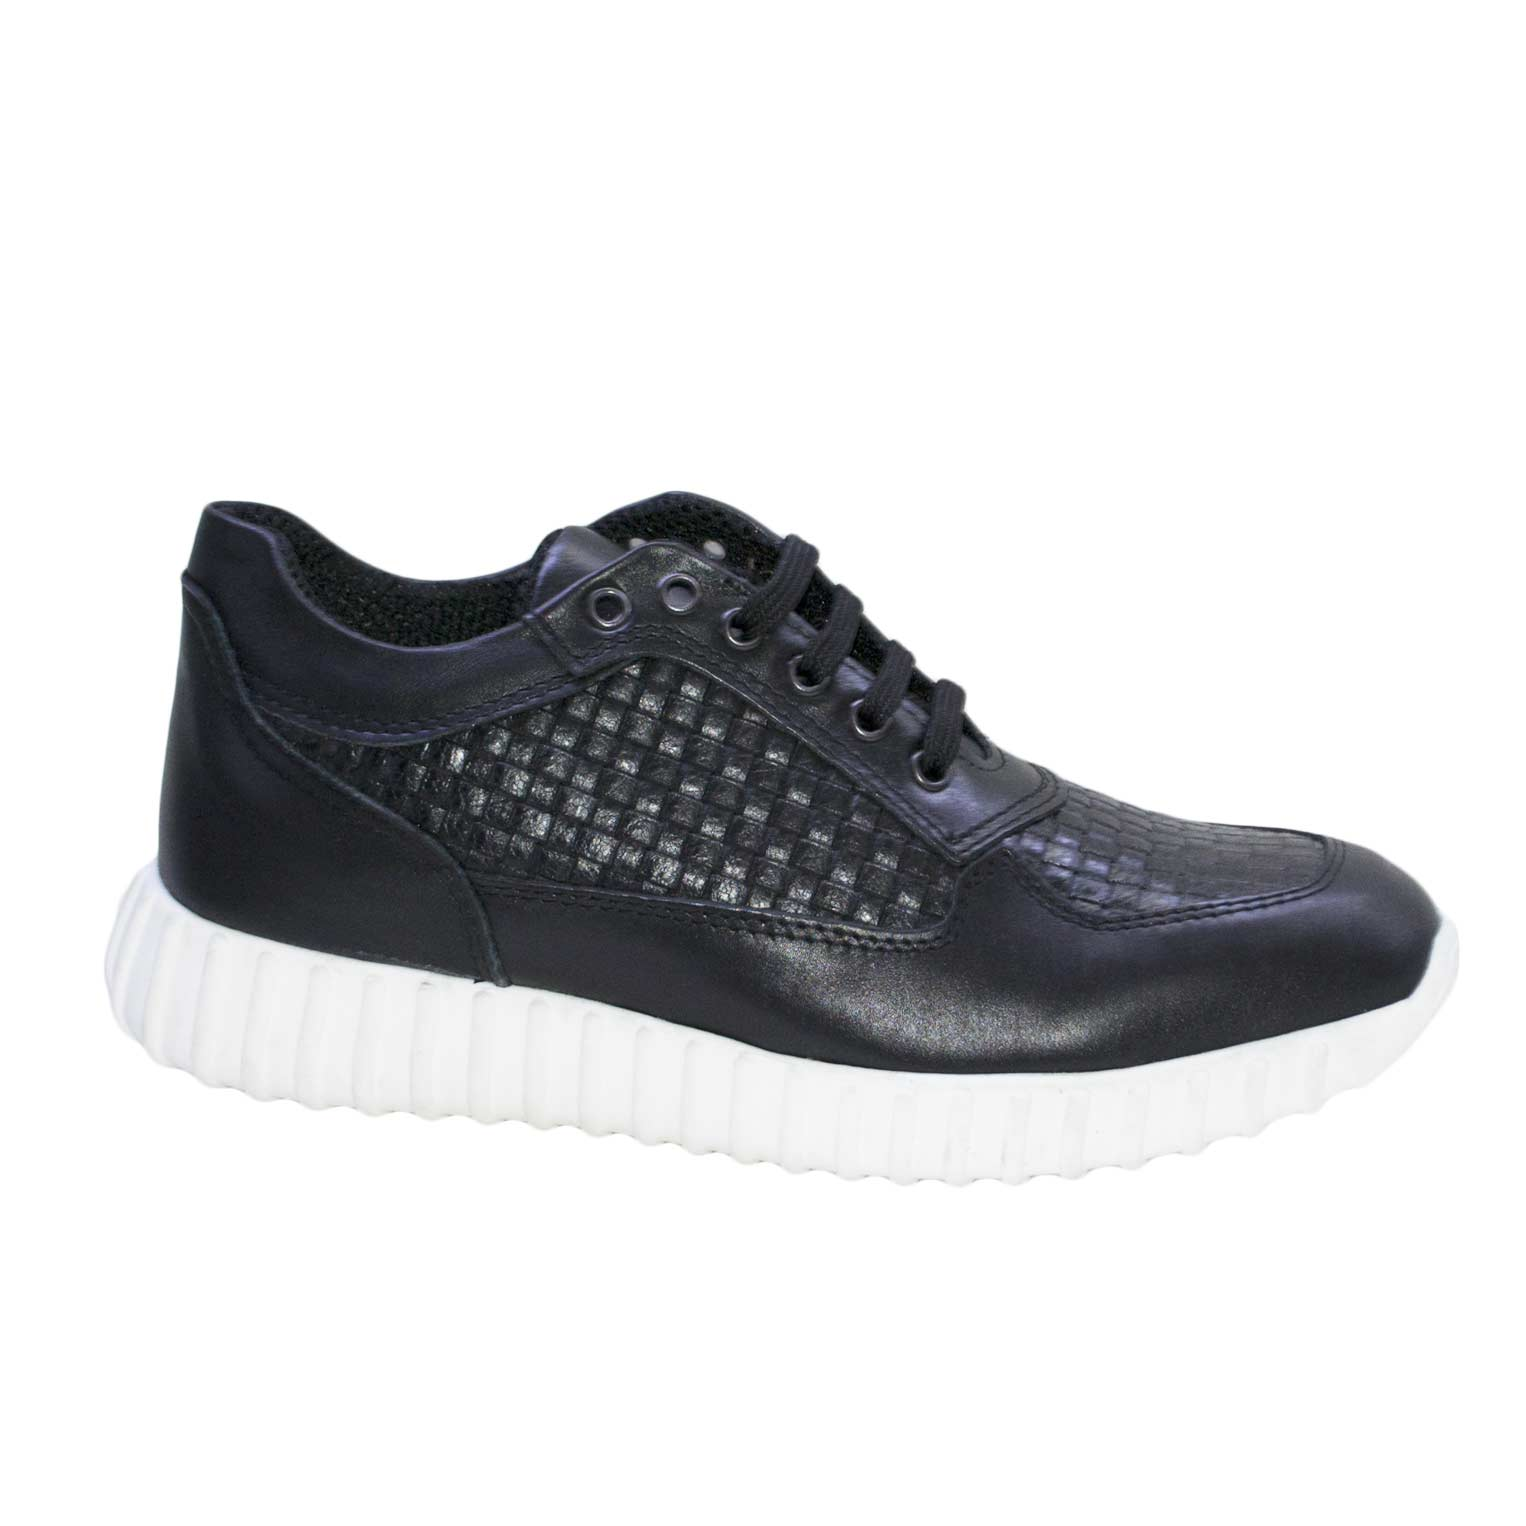 Sneakers bassa stringata lacci intreccio nero art 900 vera pelle made in italy fondo antiscivolo bianco running.